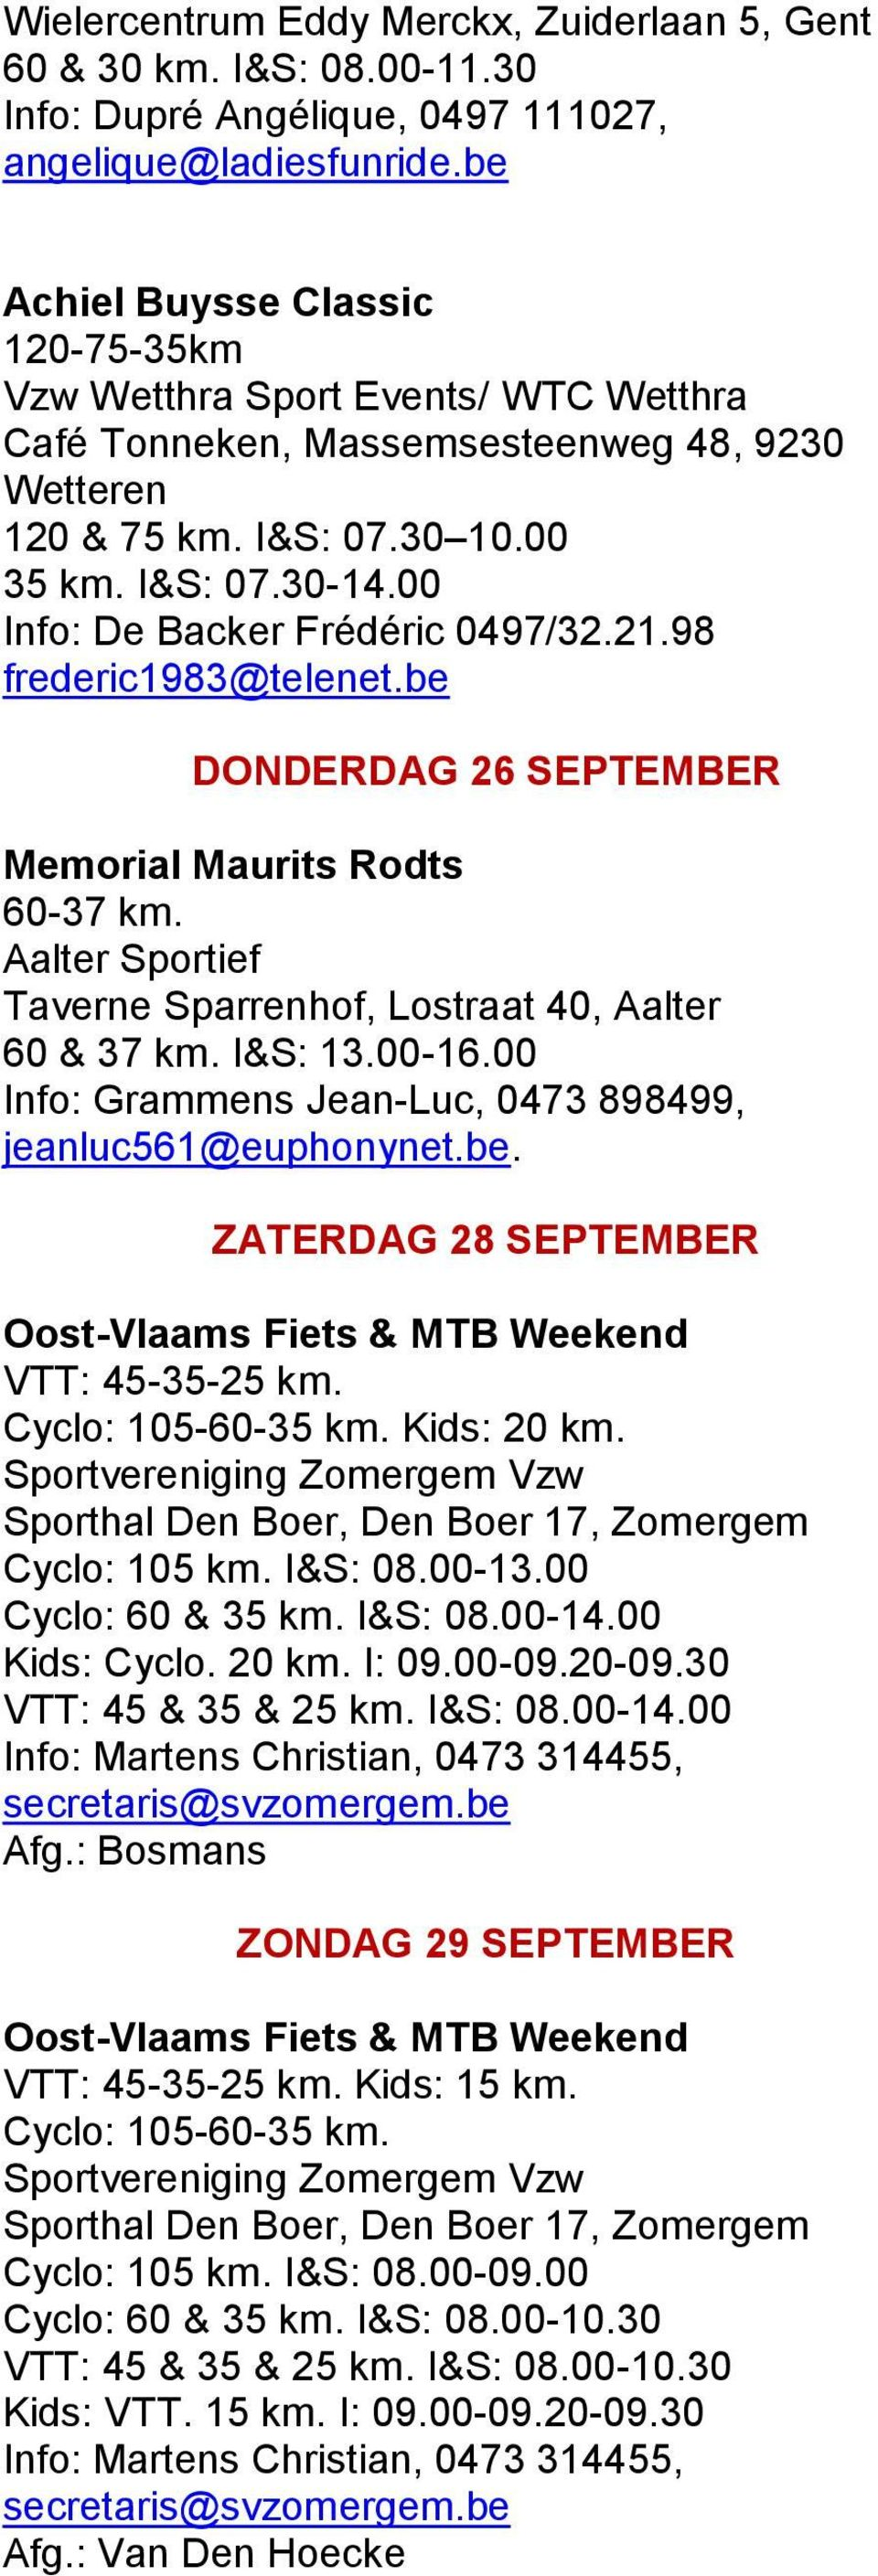 00 Info: De Backer Frédéric 0497/32.21.98 frederic1983@telenet.be DONDERDAG 26 SEPTEMBER Memorial Maurits Rodts 60-37 km. Aalter Sportief Taverne Sparrenhof, Lostraat 40, Aalter 60 & 37 km. I&S: 13.